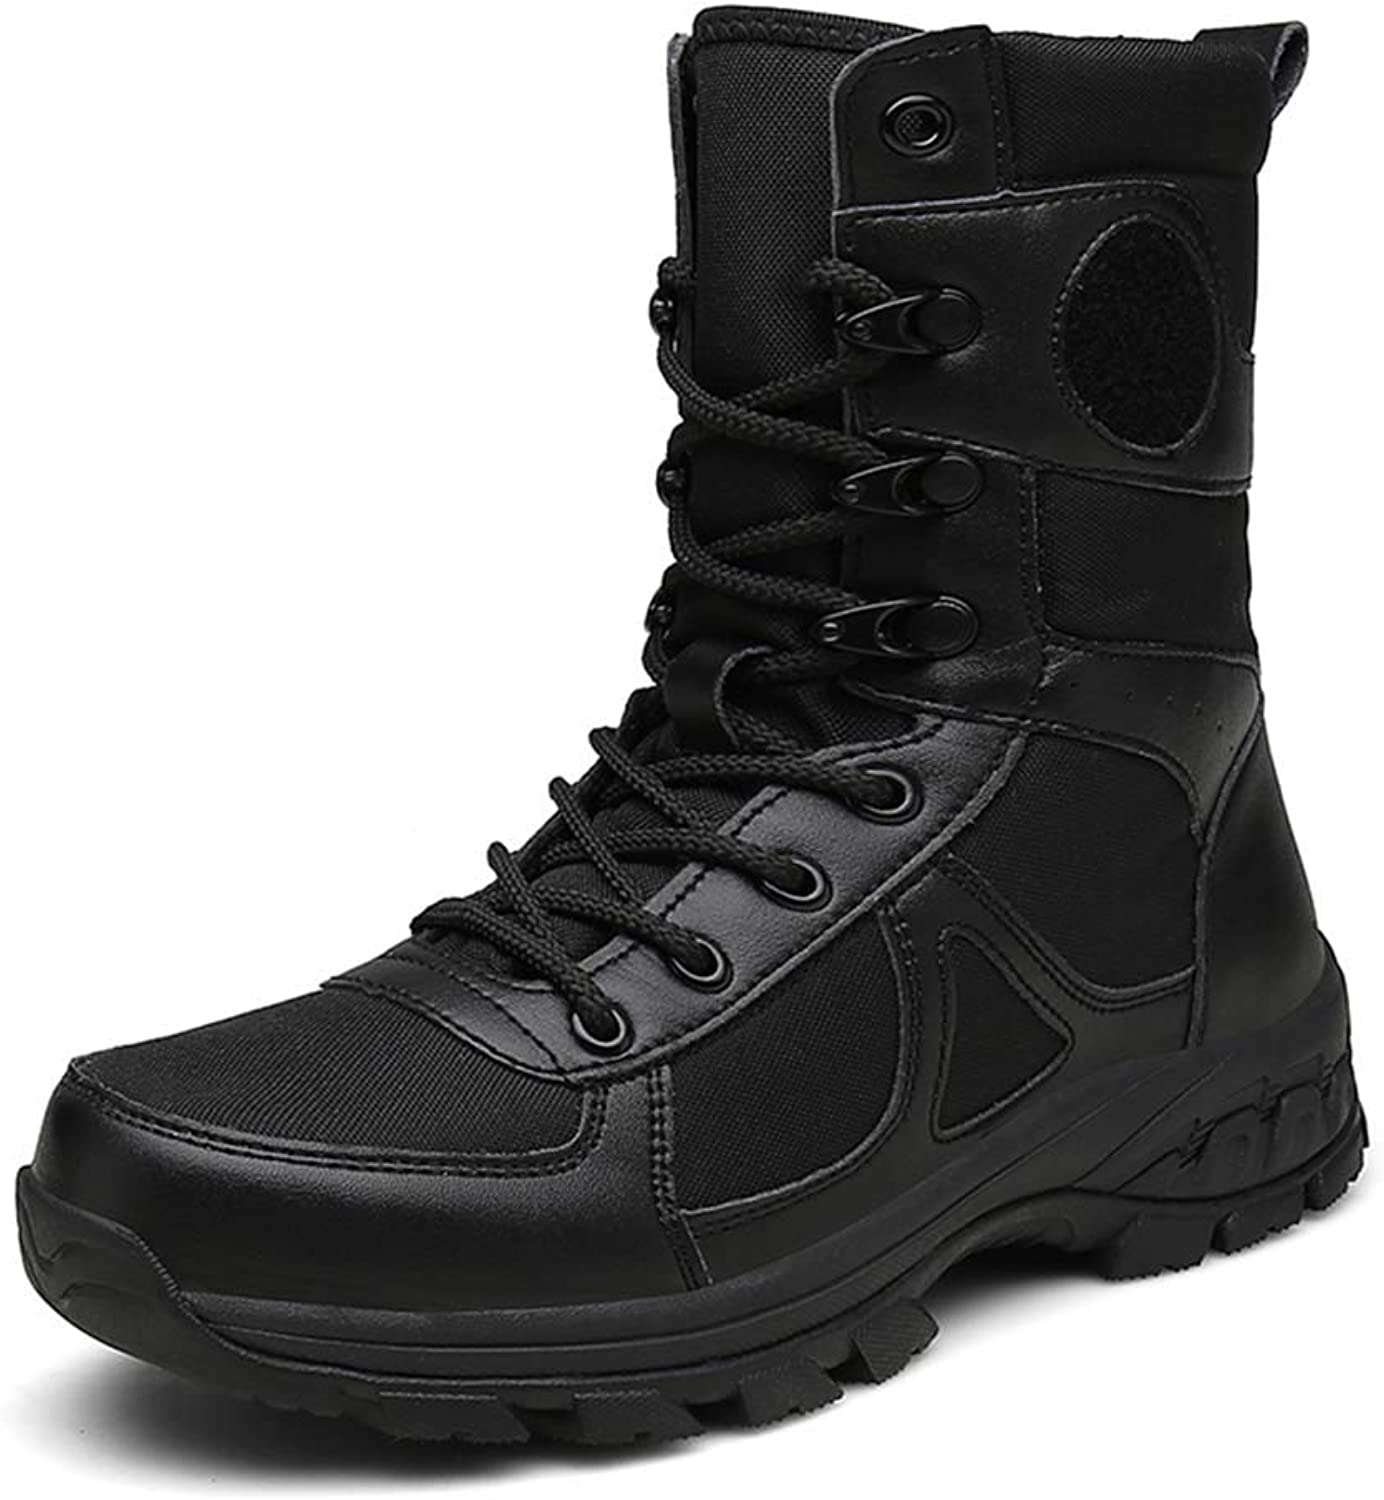 4b7131f7a05 Men's Tactical Boots Waterproof Breathable Boots Wear-Resistant Non ...